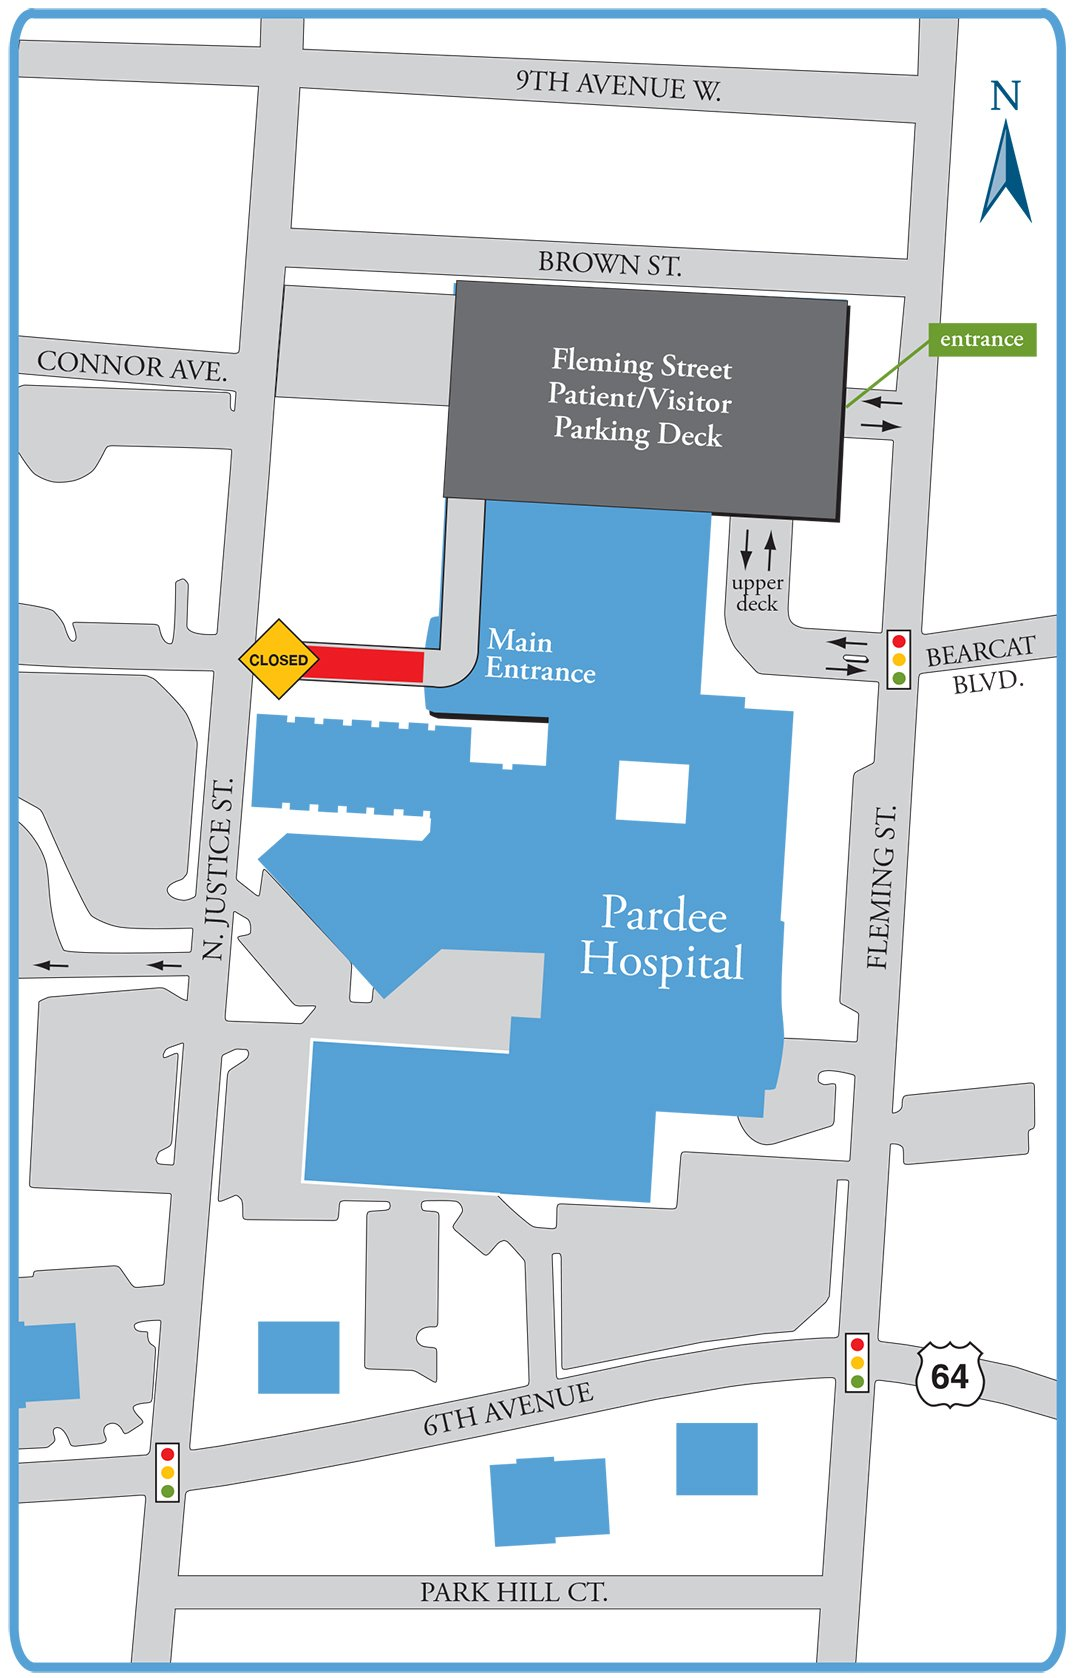 Justice Street Entrance Closing